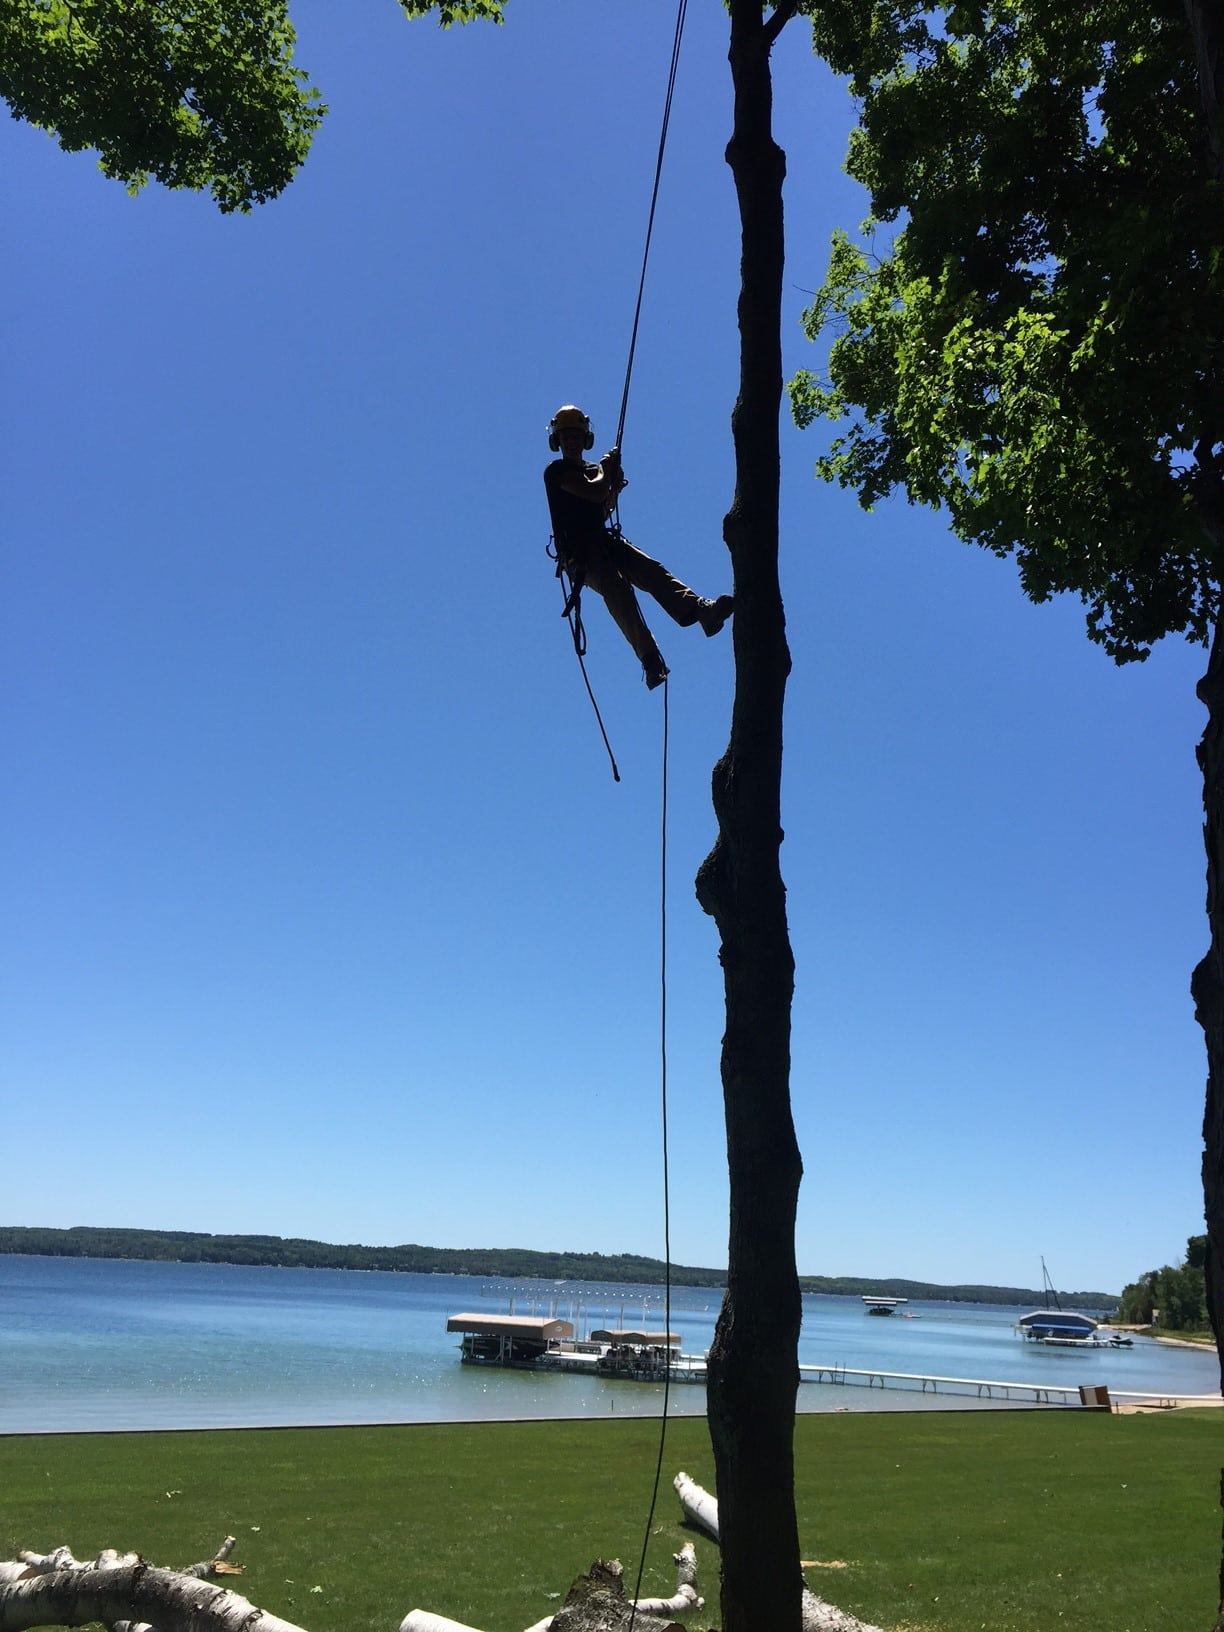 tree service arborist hangs from a line